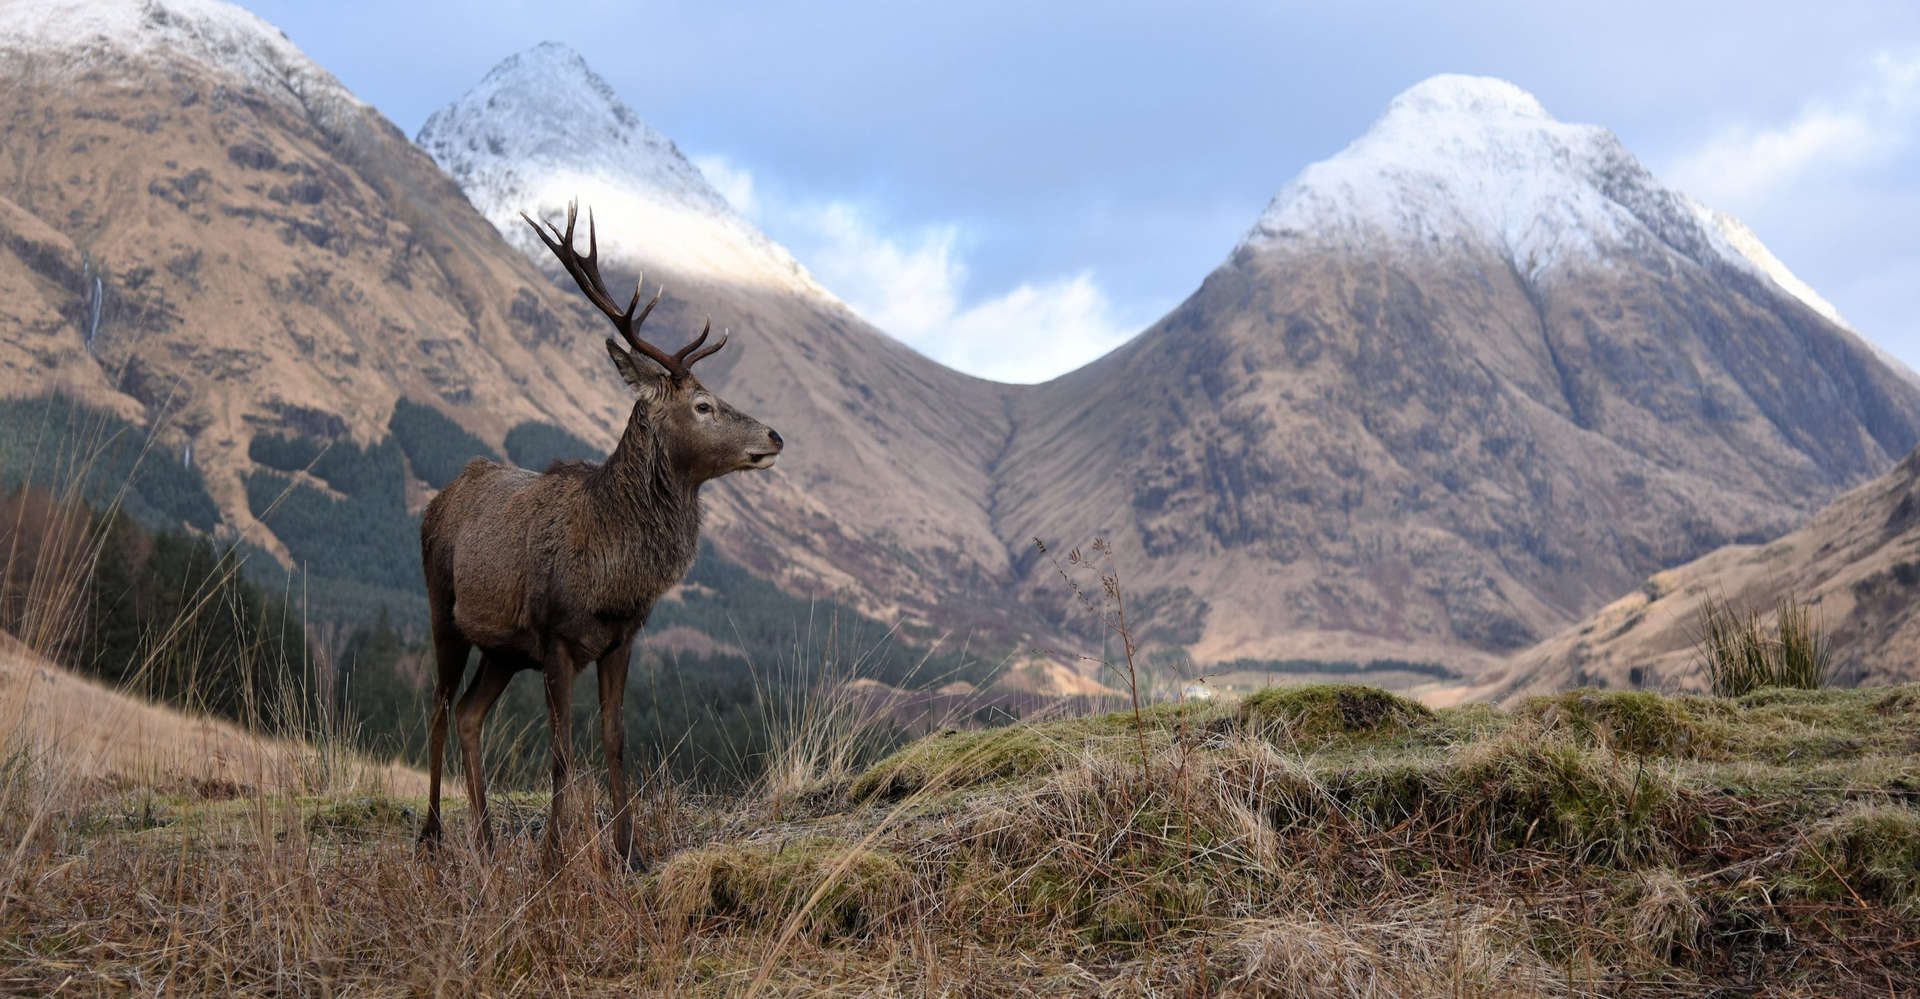 Stag in Glencoe, Scotland with snowy mountains